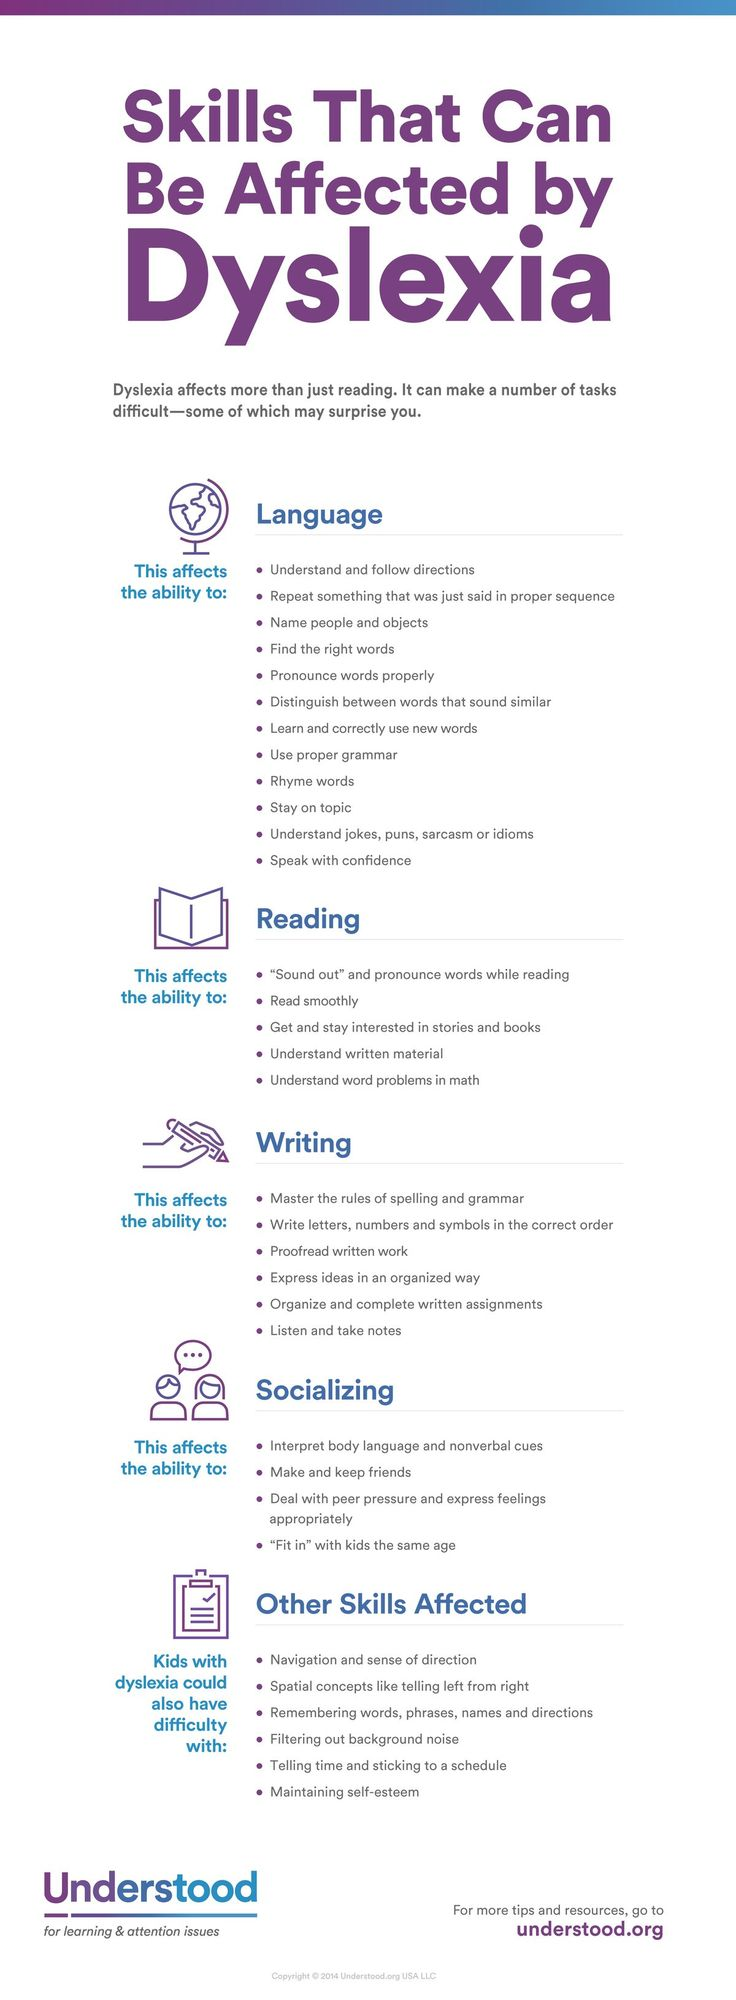 Some people think of dyslexia as a learning issue that only involves reading. But brain differences associated with dyslexia can make a number of tasks difficult. Here's an overview of skills and behaviors dyslexia can affect. Wenn du mehr zu LRS und Übungsmöglichkeiten erfahren möchtest, schau dir den LRS-Club auf LRS-Club.de an.